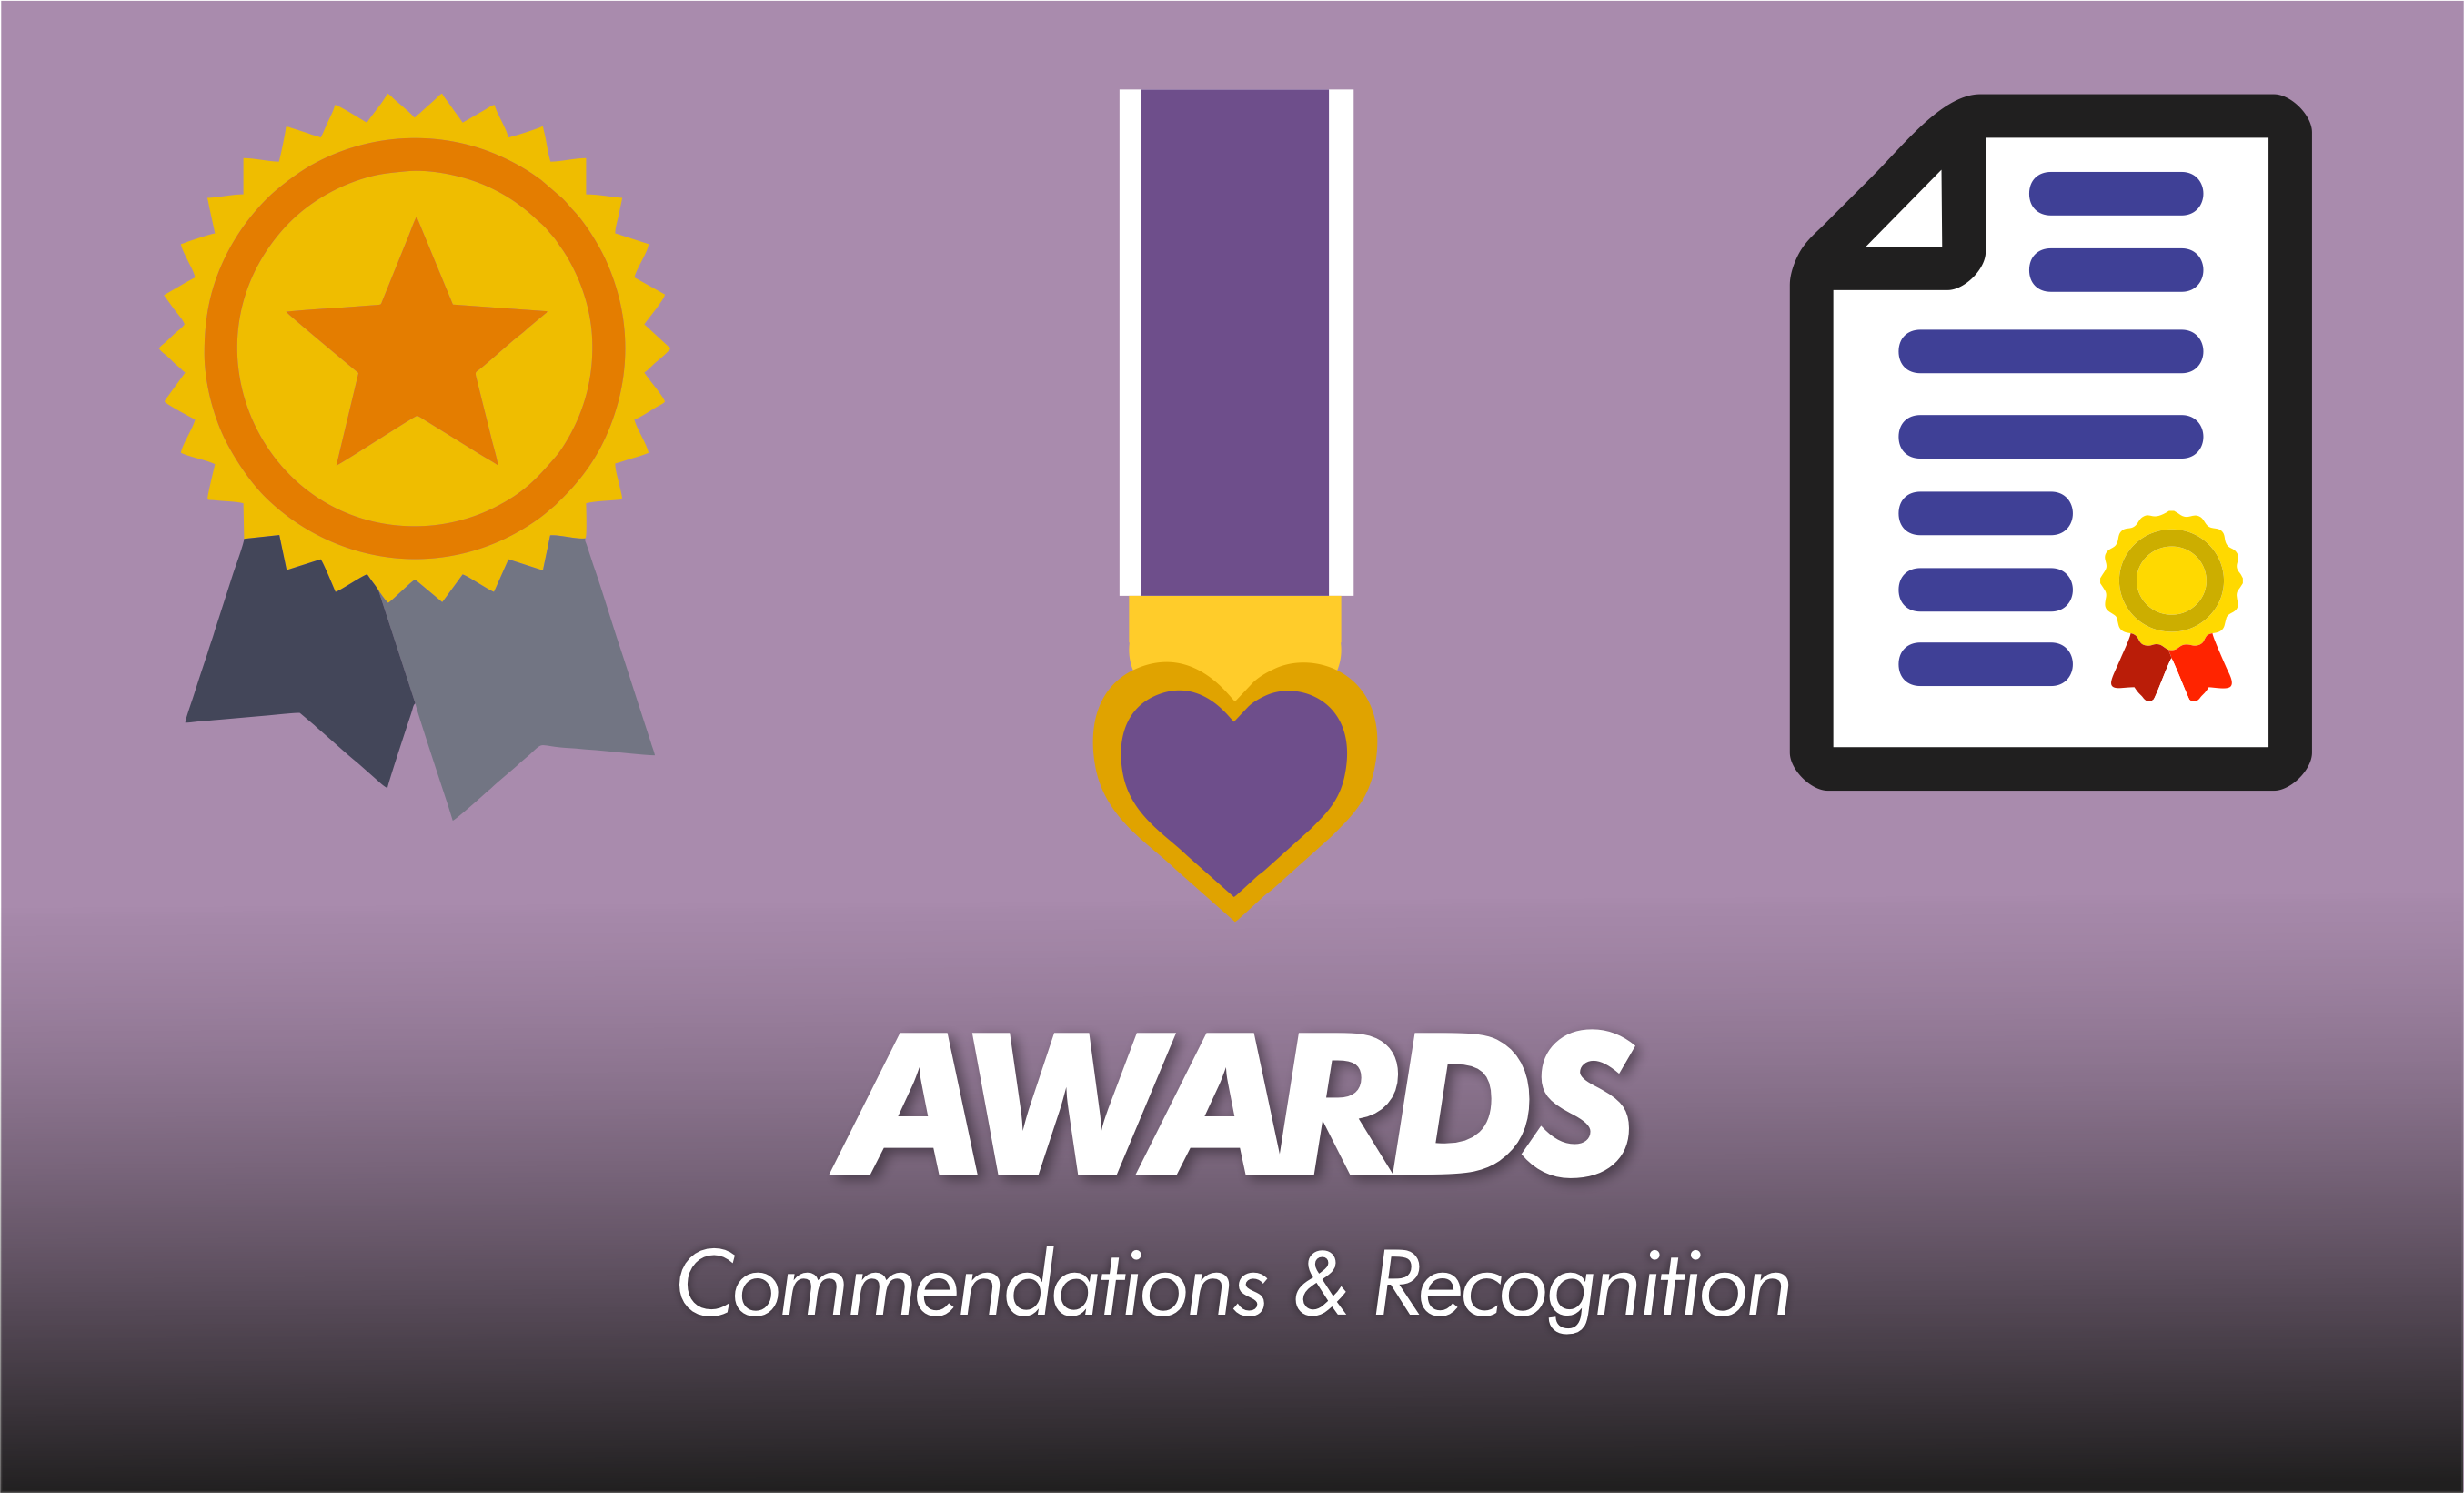 Awards & Commendations